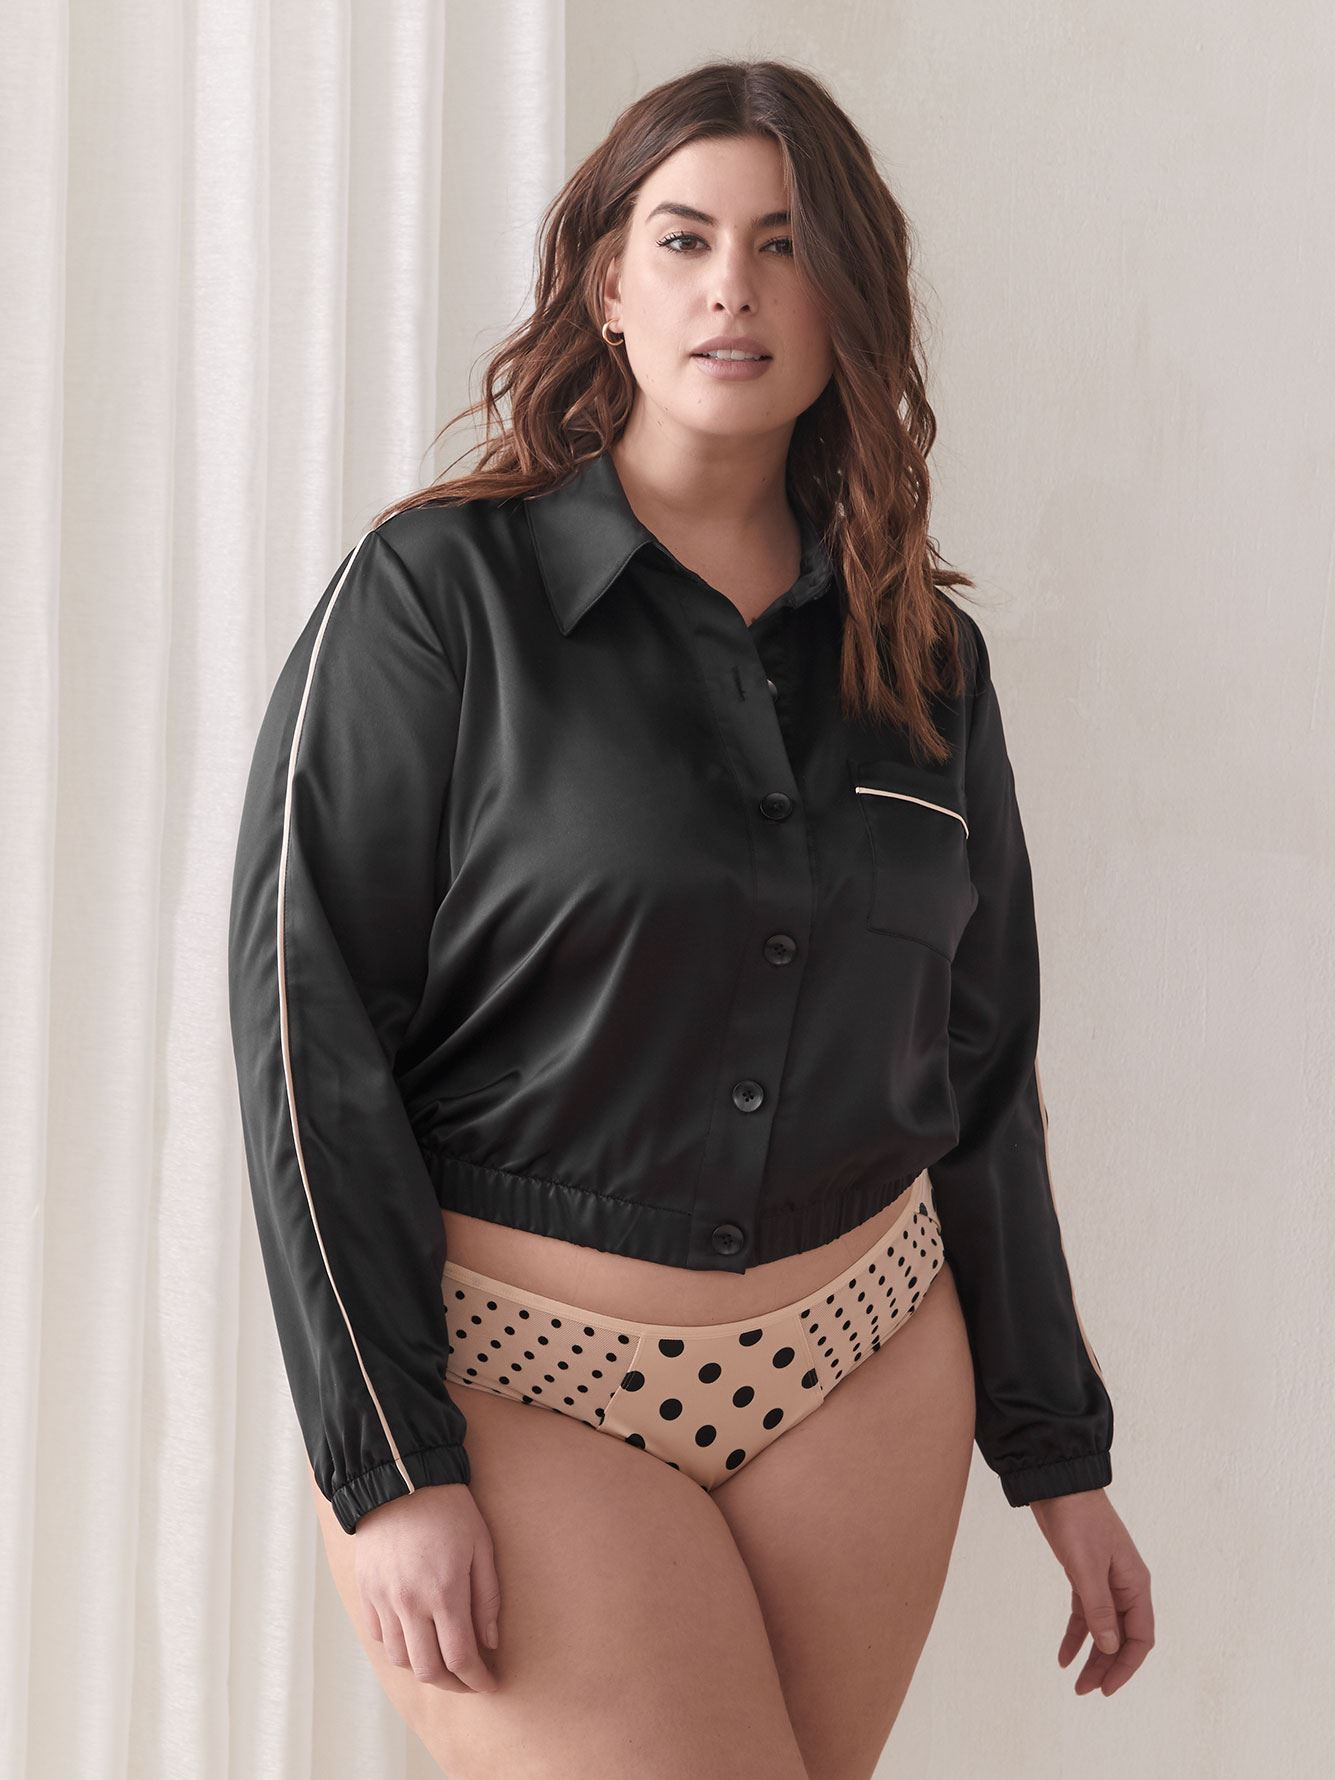 Pajama Crop Top with Piping Detail - Ashley Graham